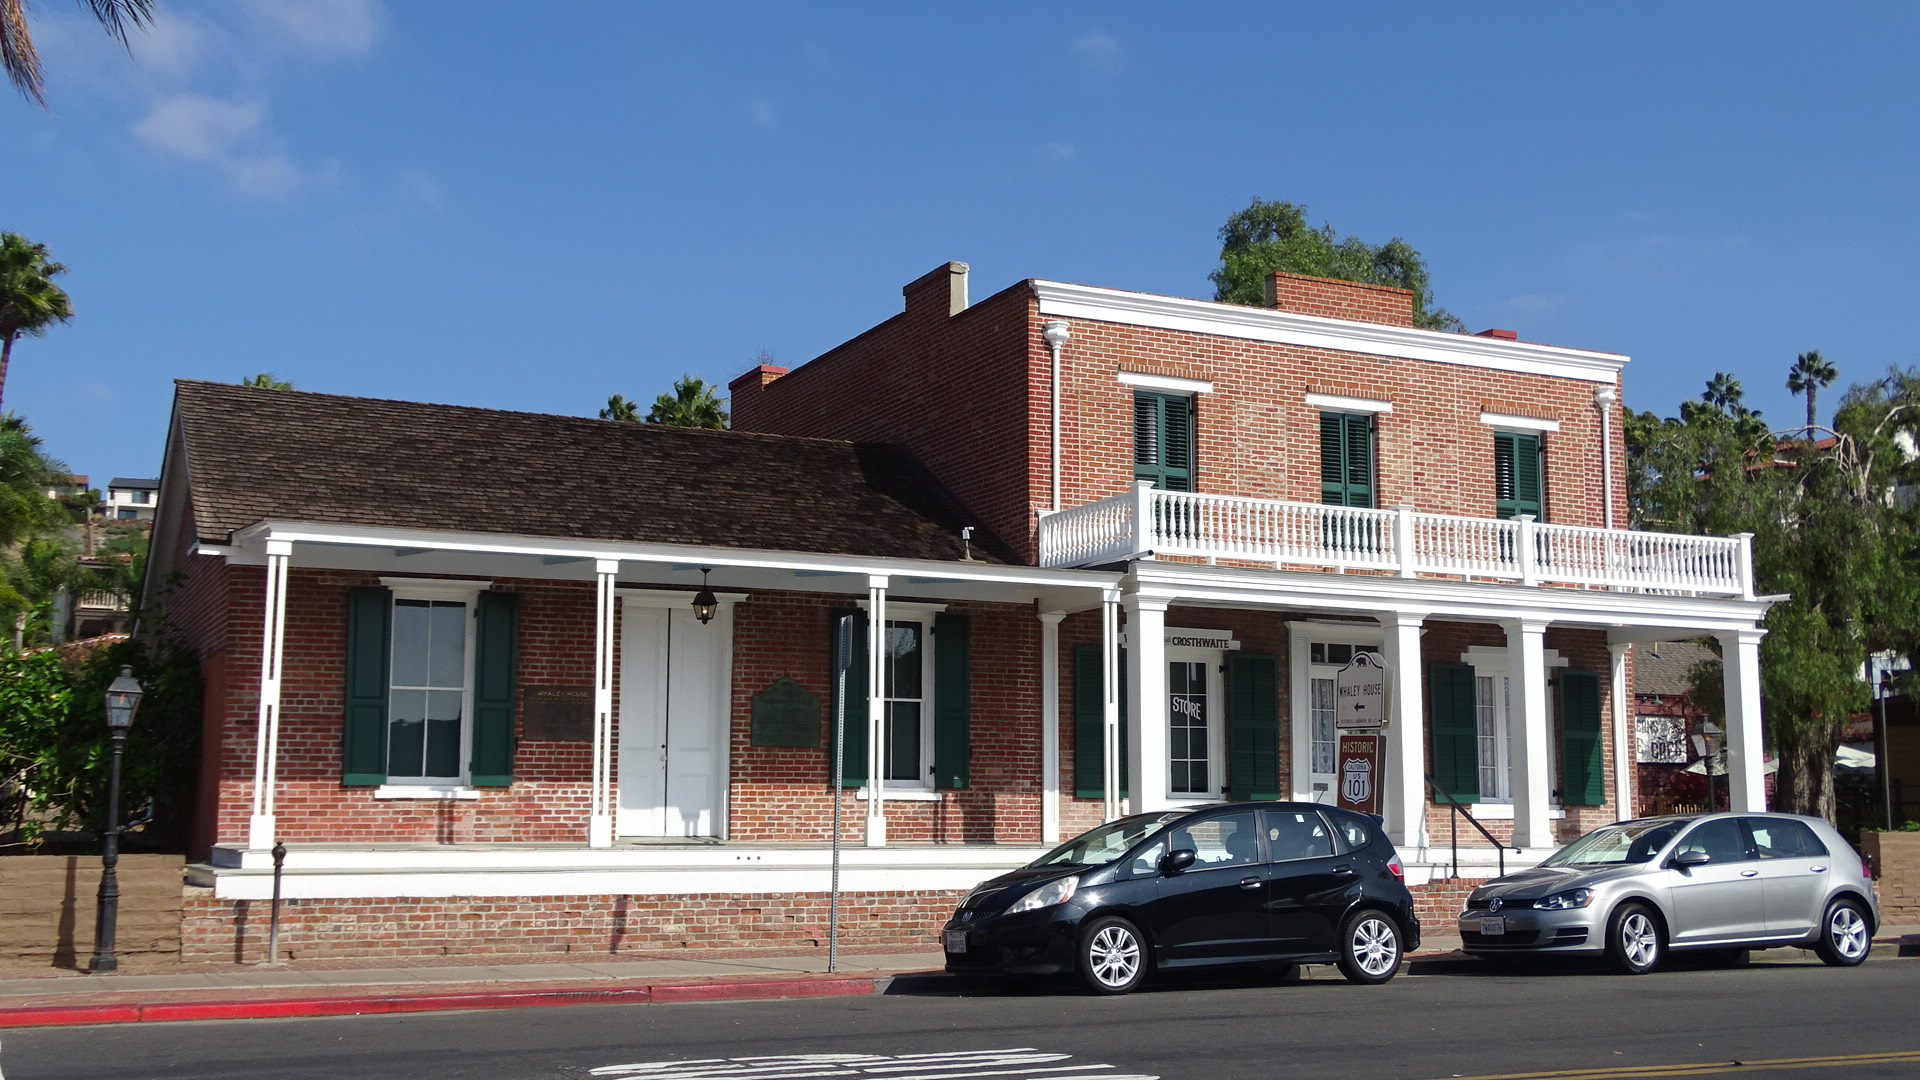 Whaley House paranormal